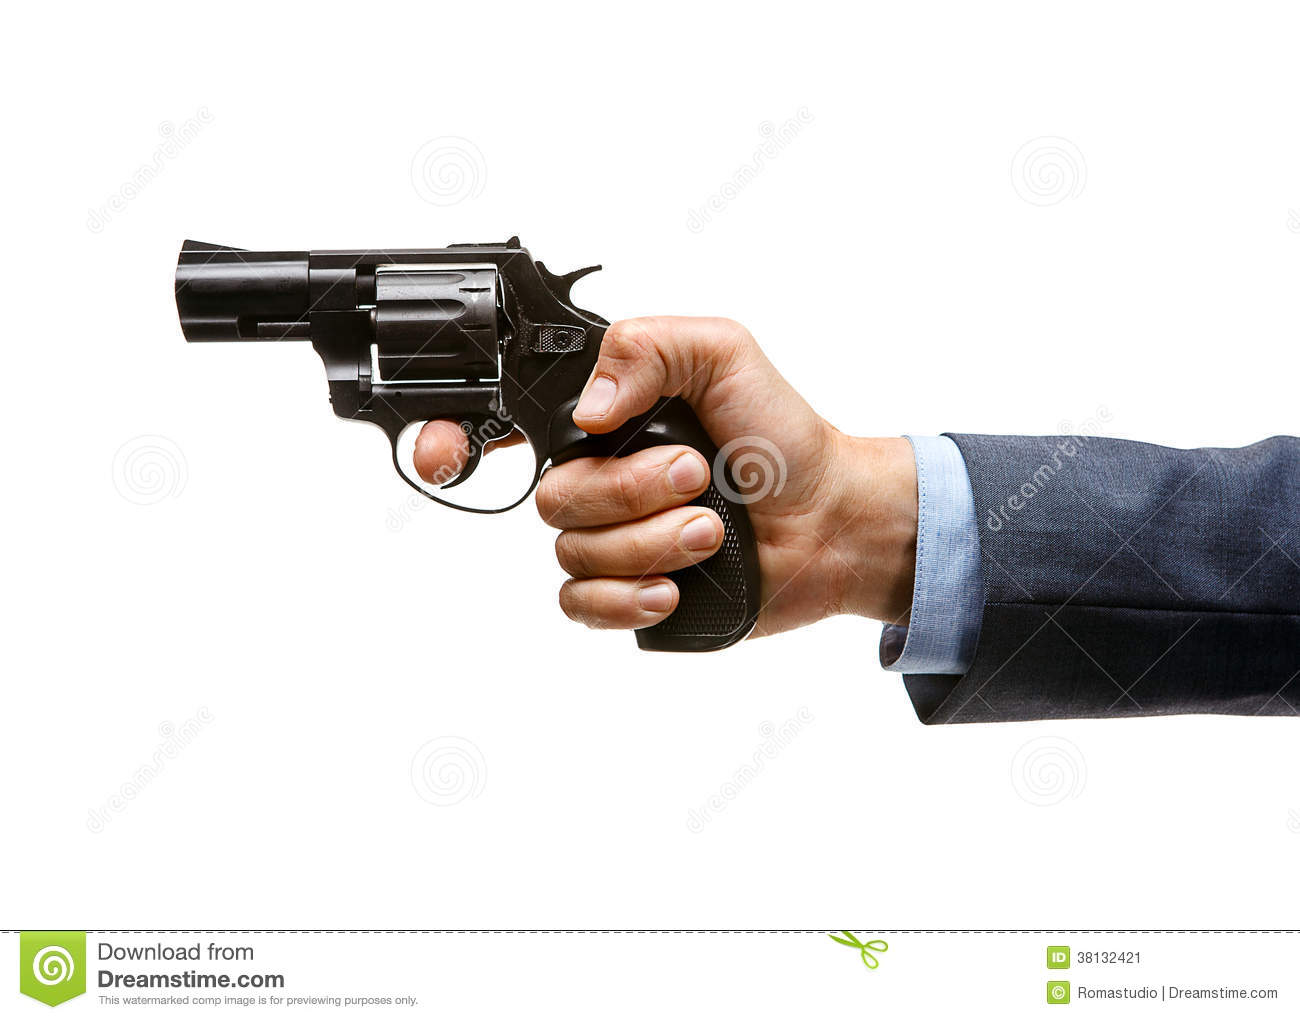 Revolver In Hand Stock Image - Image: 38132421